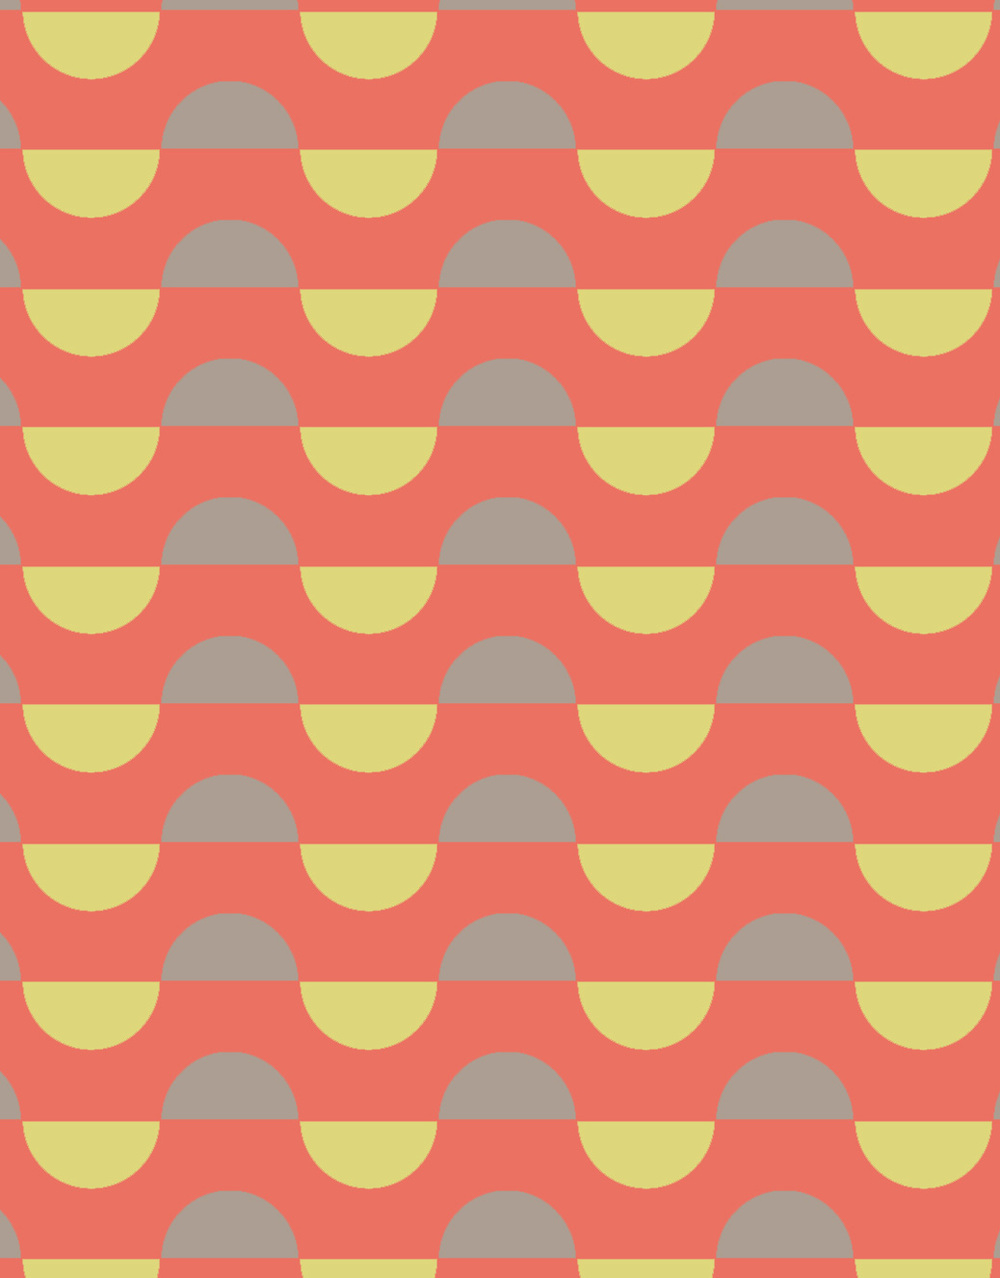 print inspired by 60's pop patterns